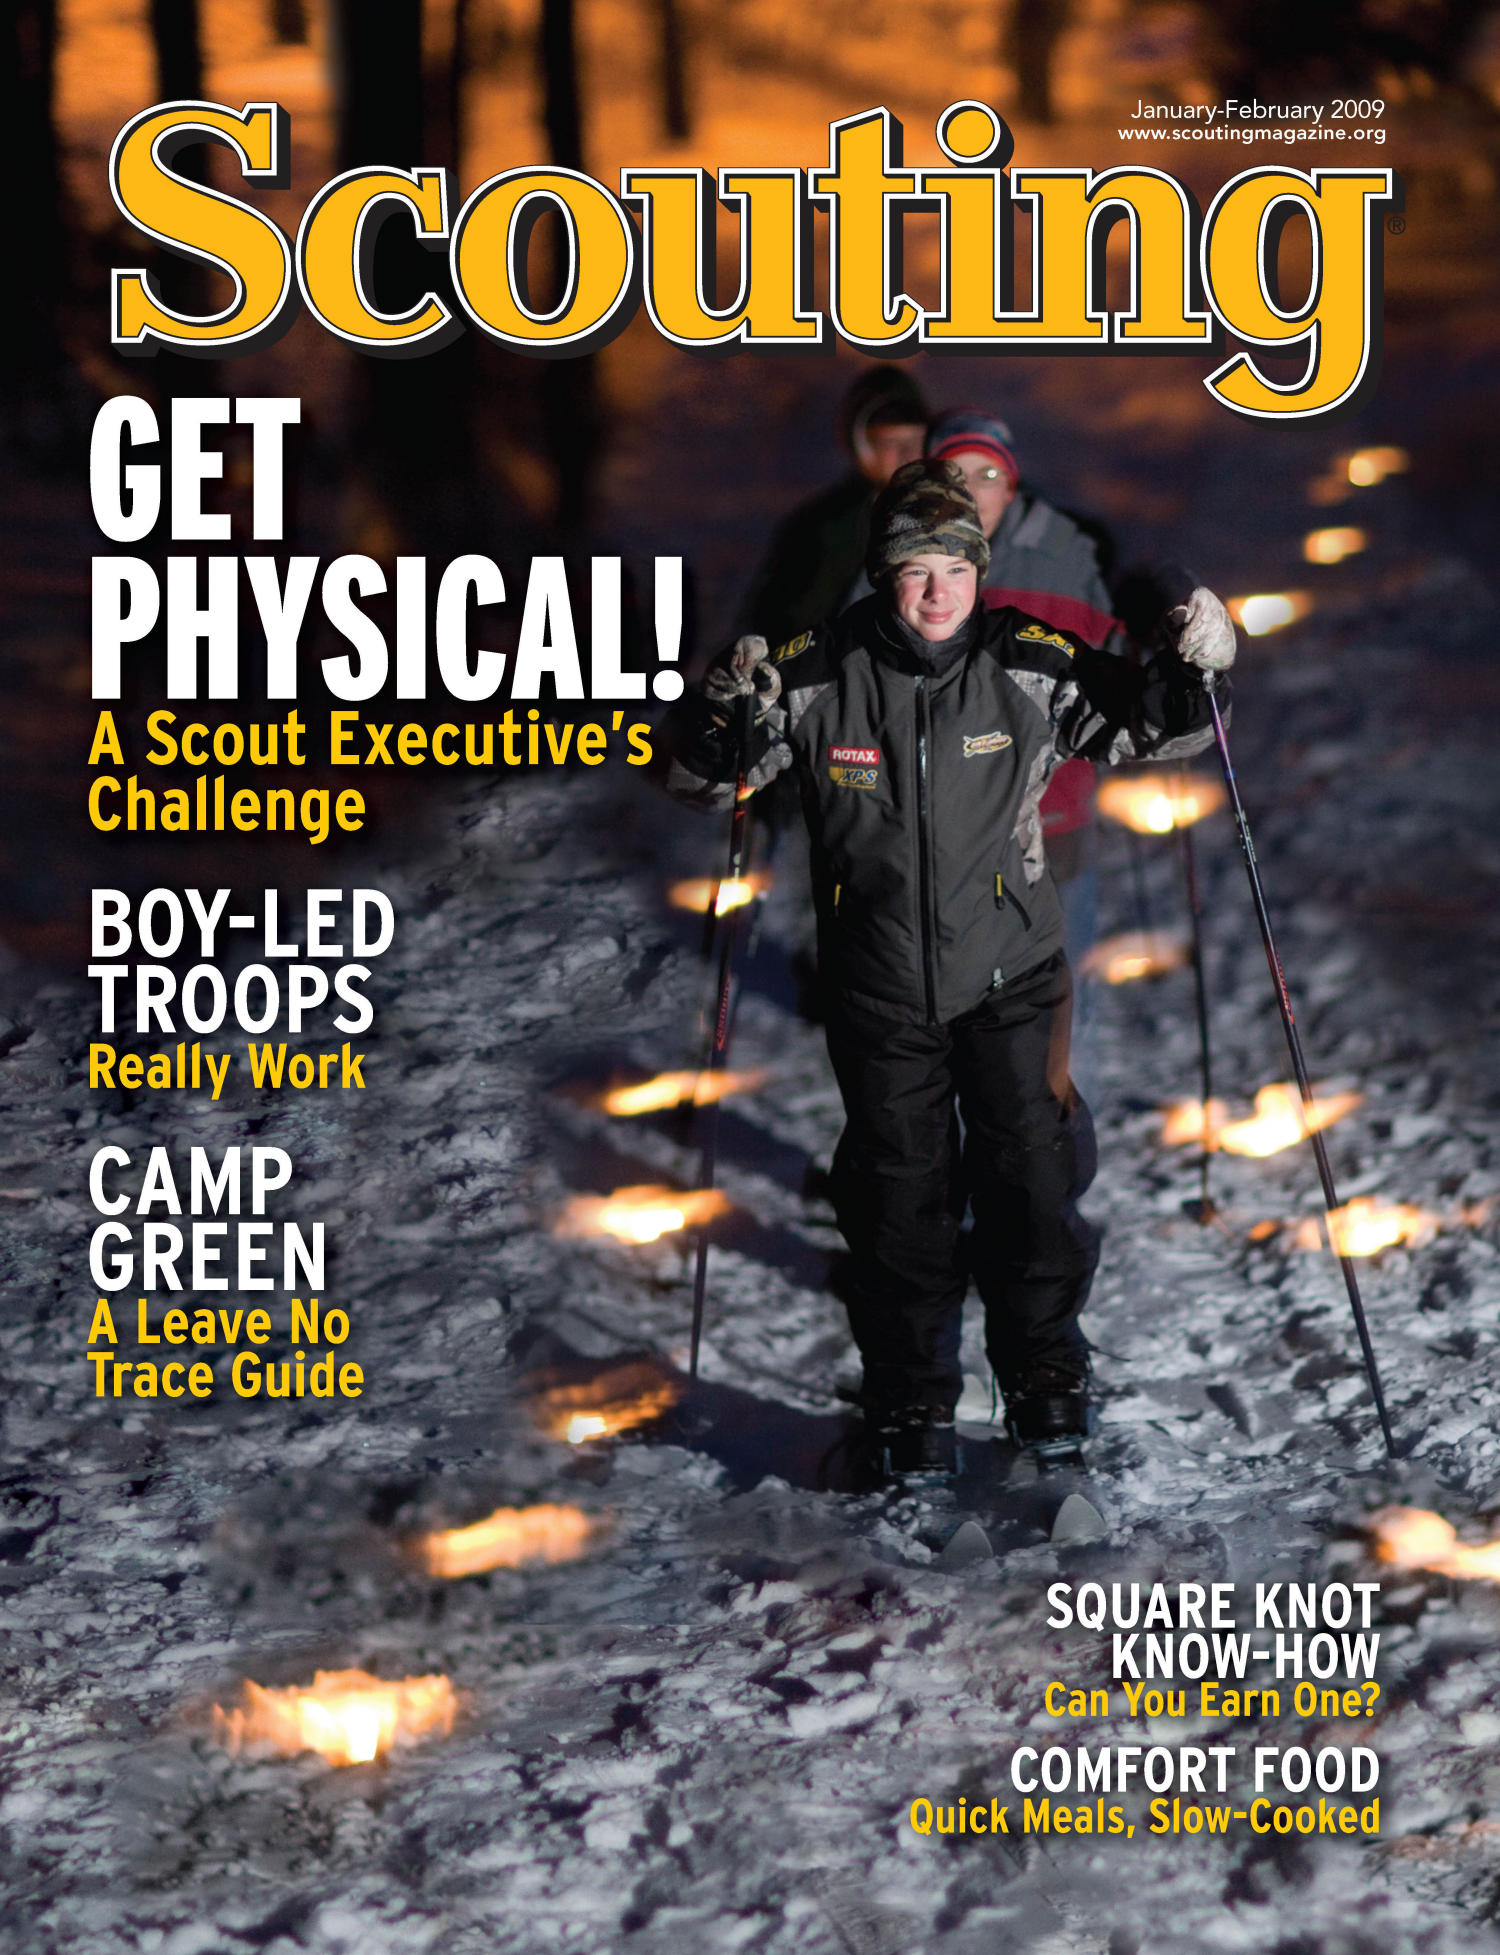 Scouting, Volume 97, Number 1, January-February 2009                                                                                                      Front Cover